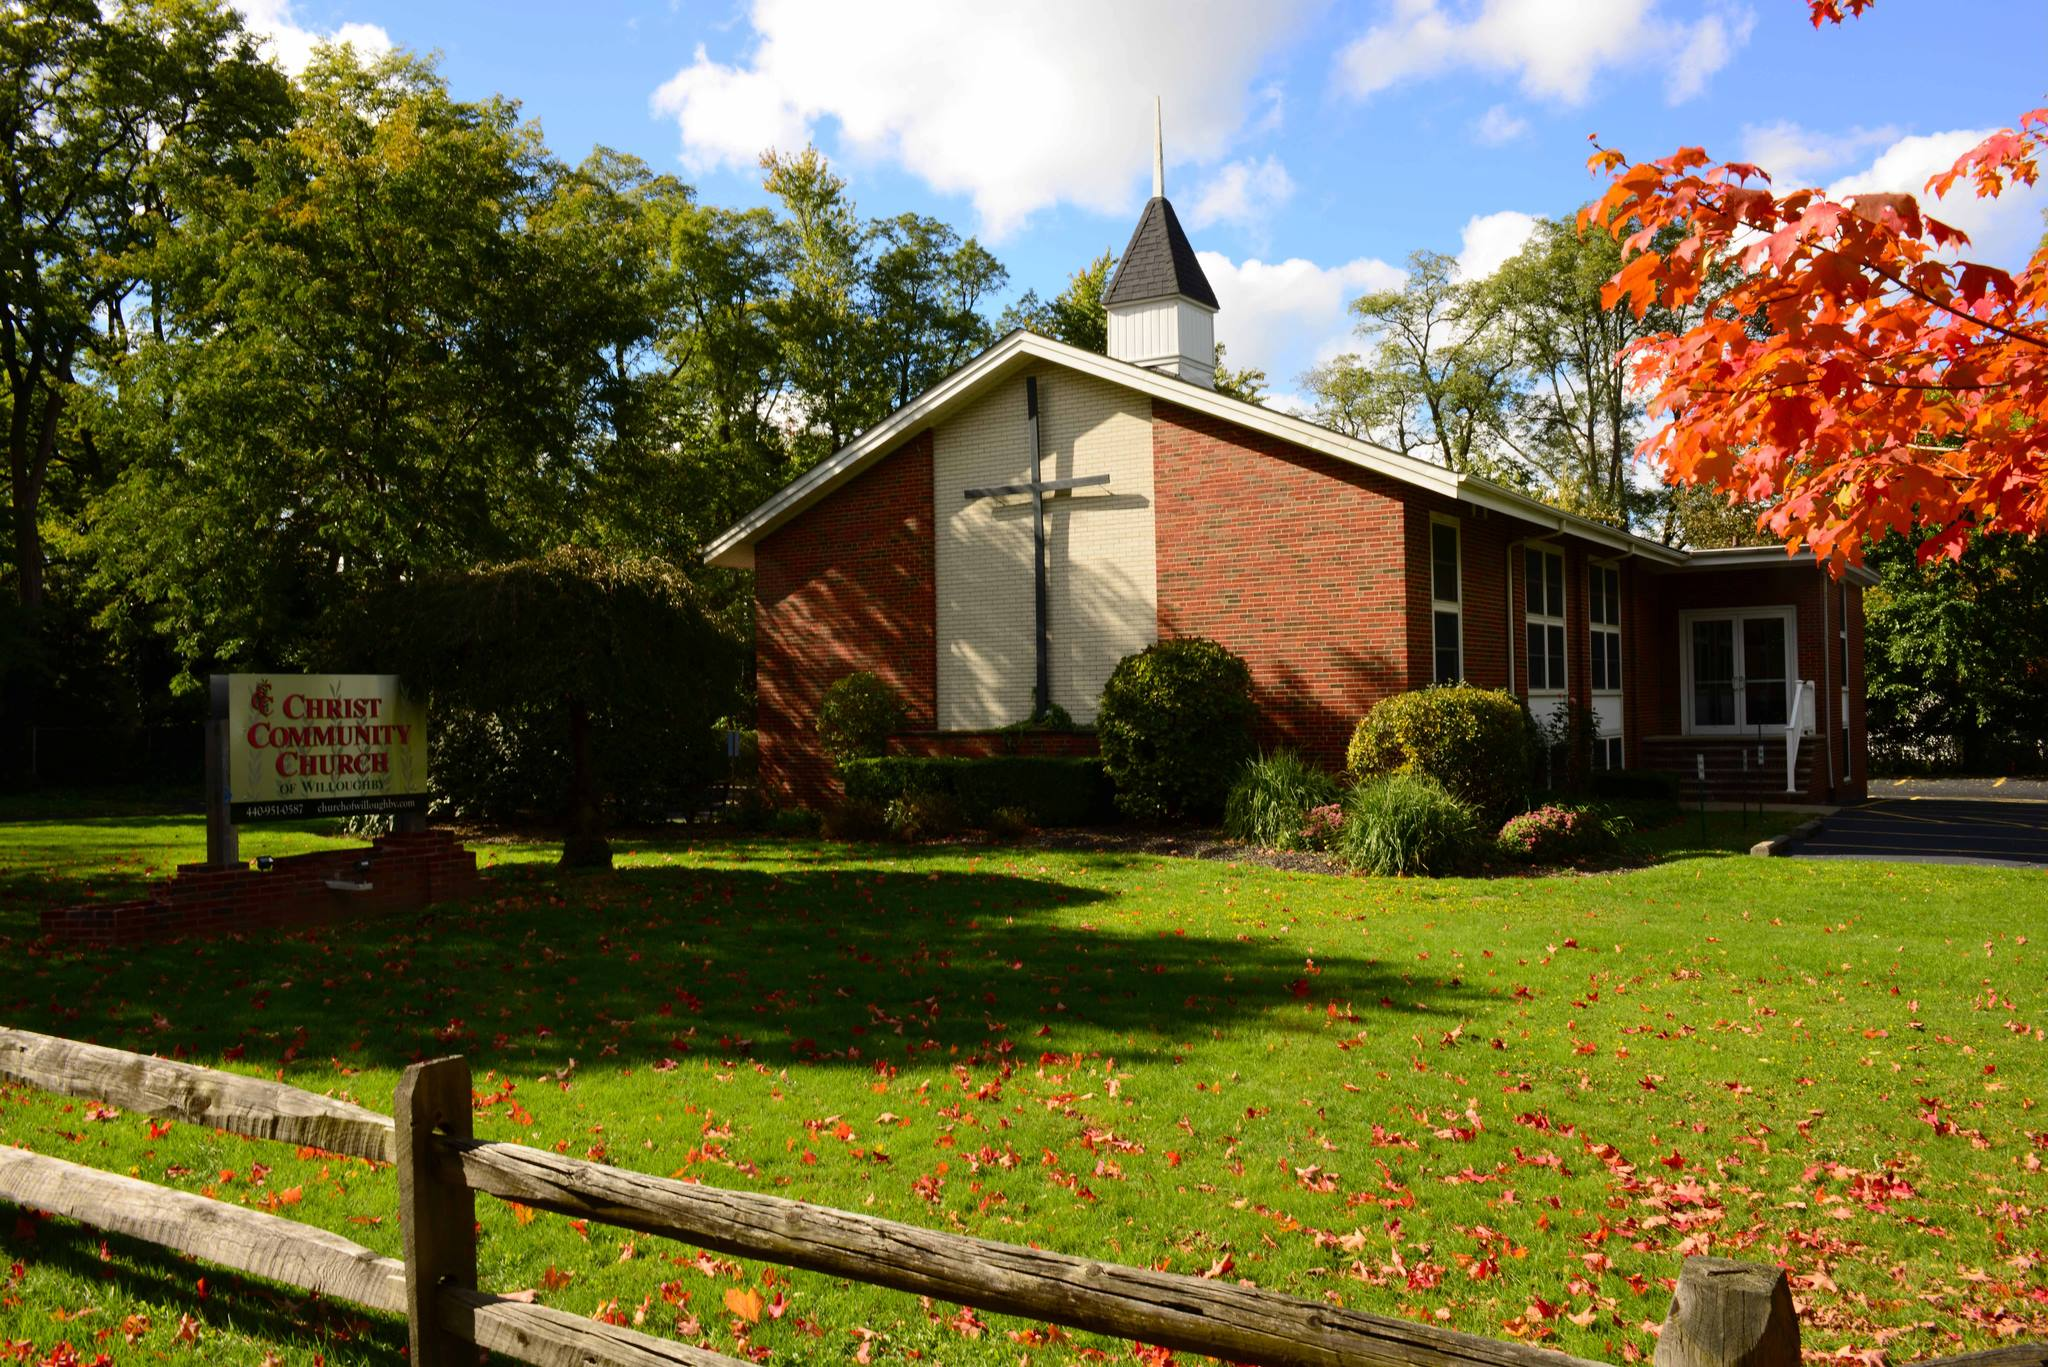 Christ Community Church Of Willoughby